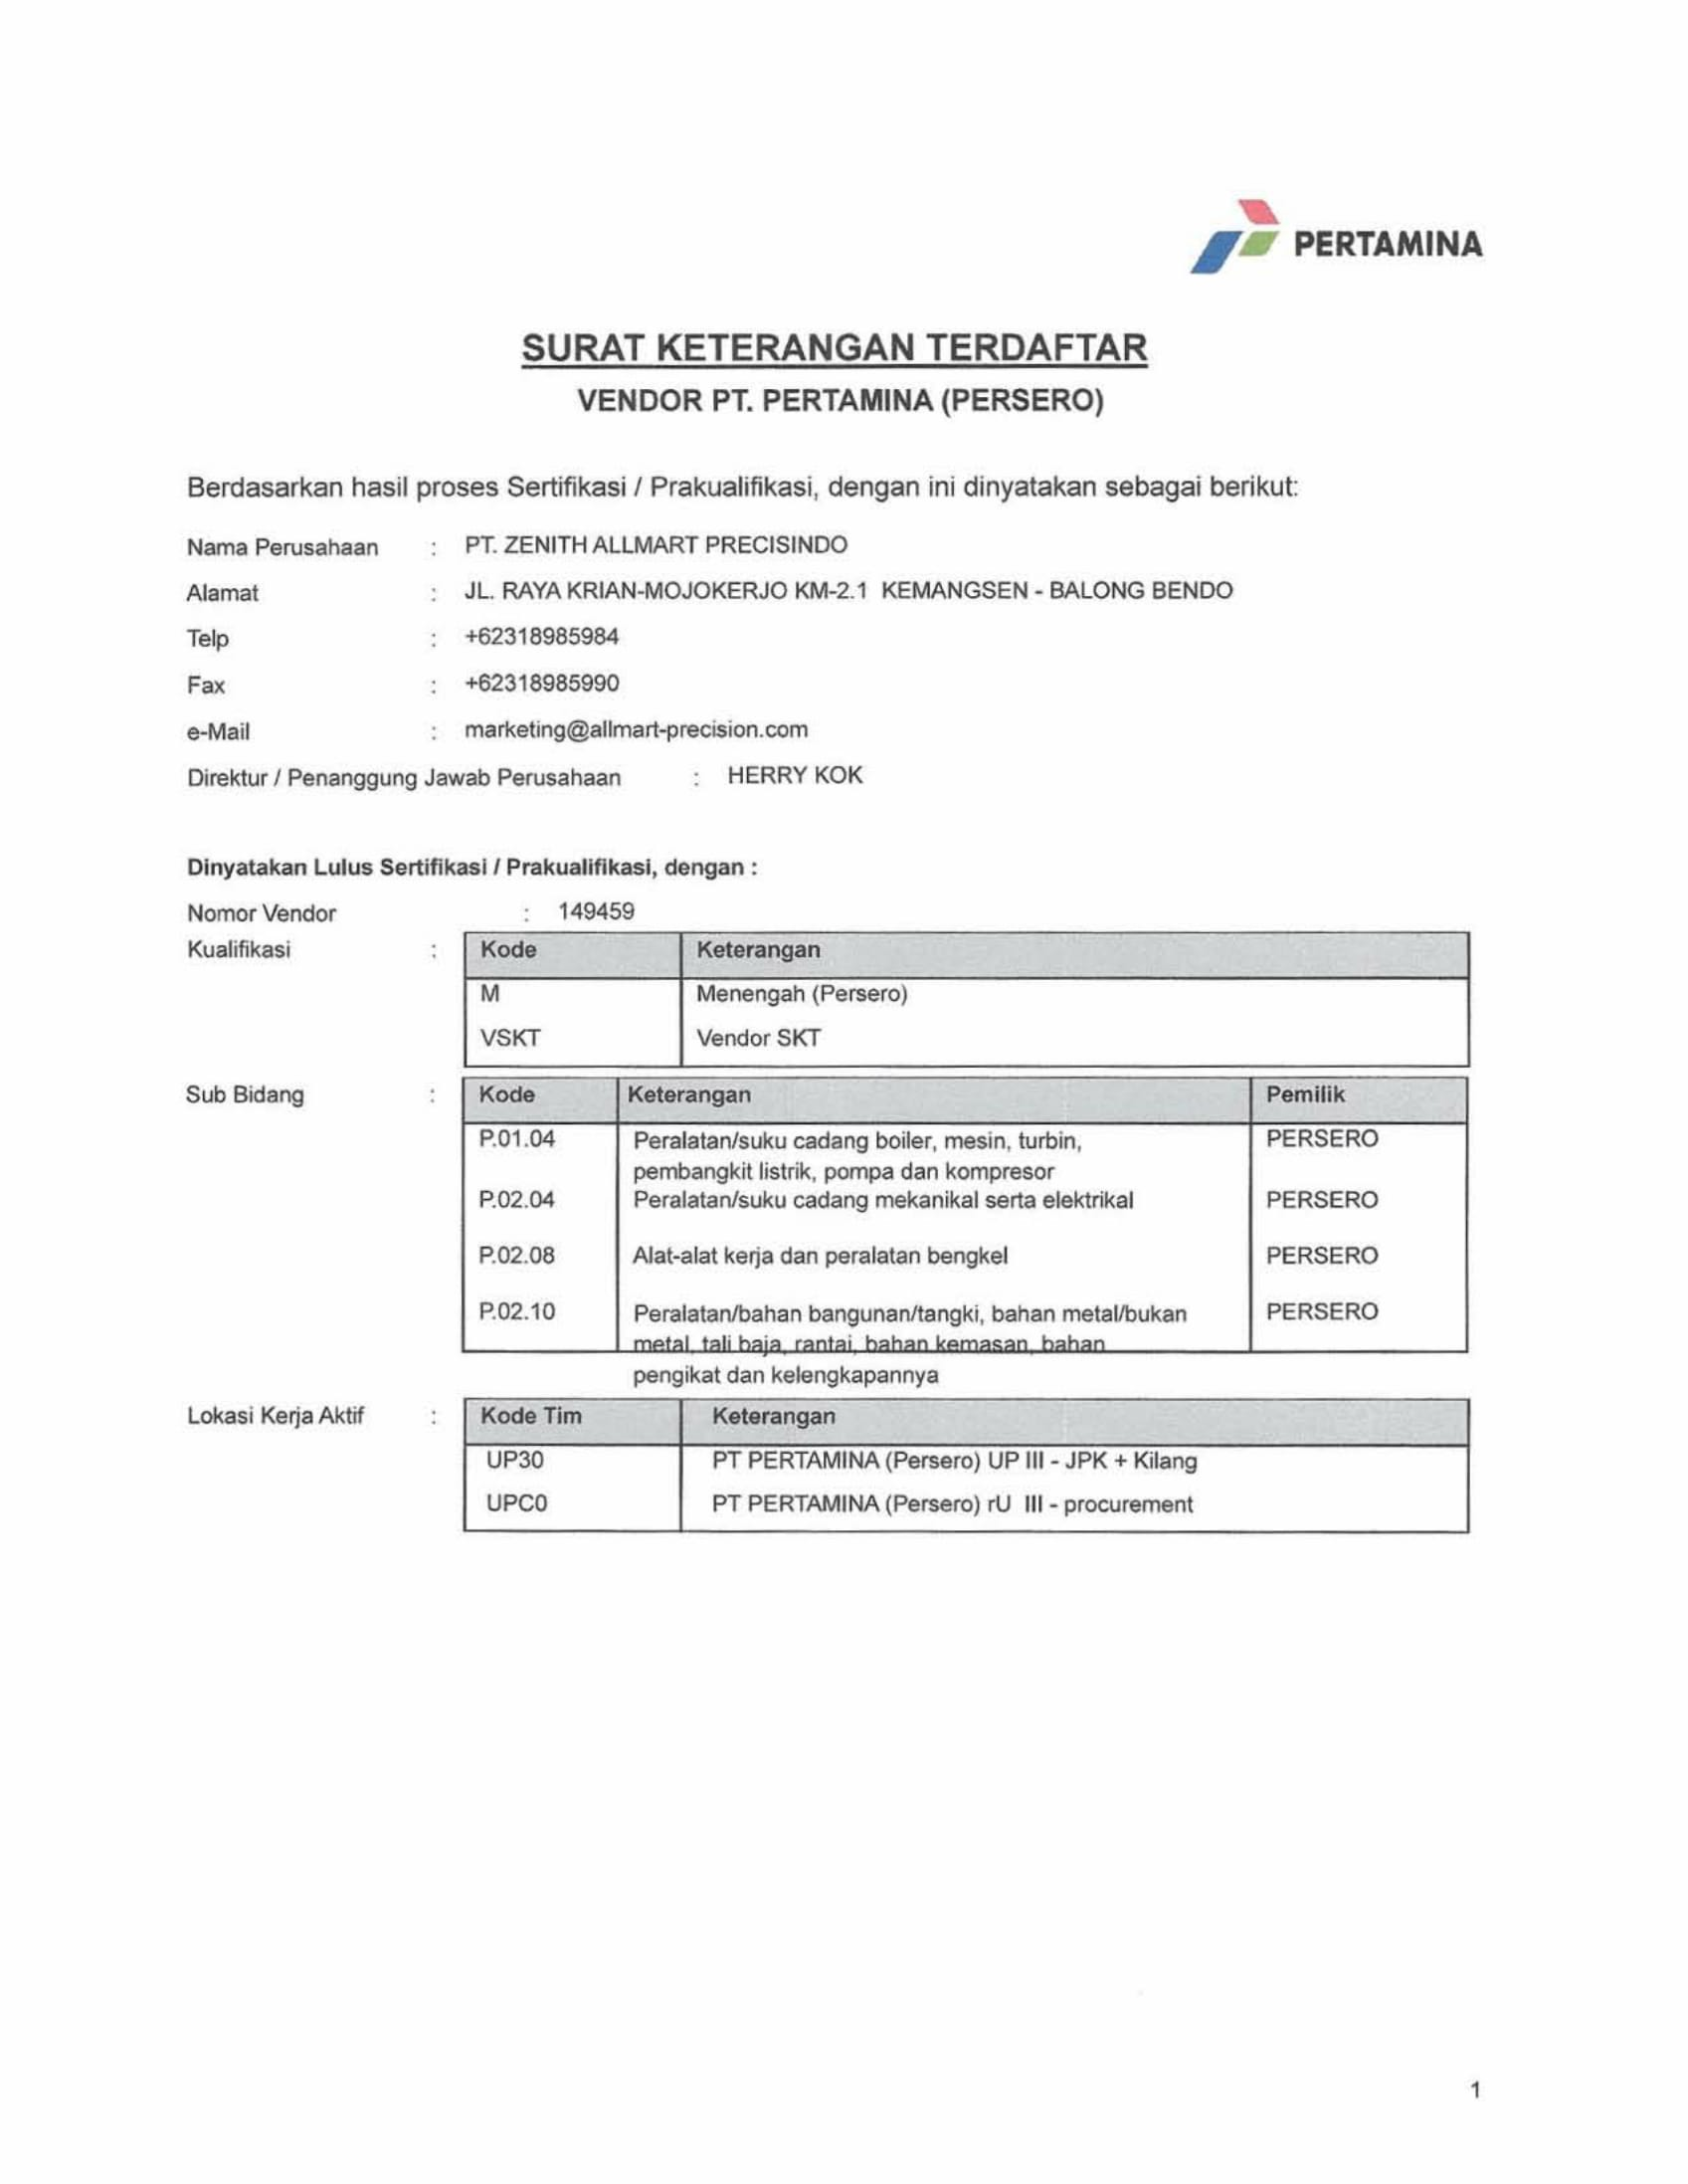 Approved Supplier Pertamina 2017 Page 1